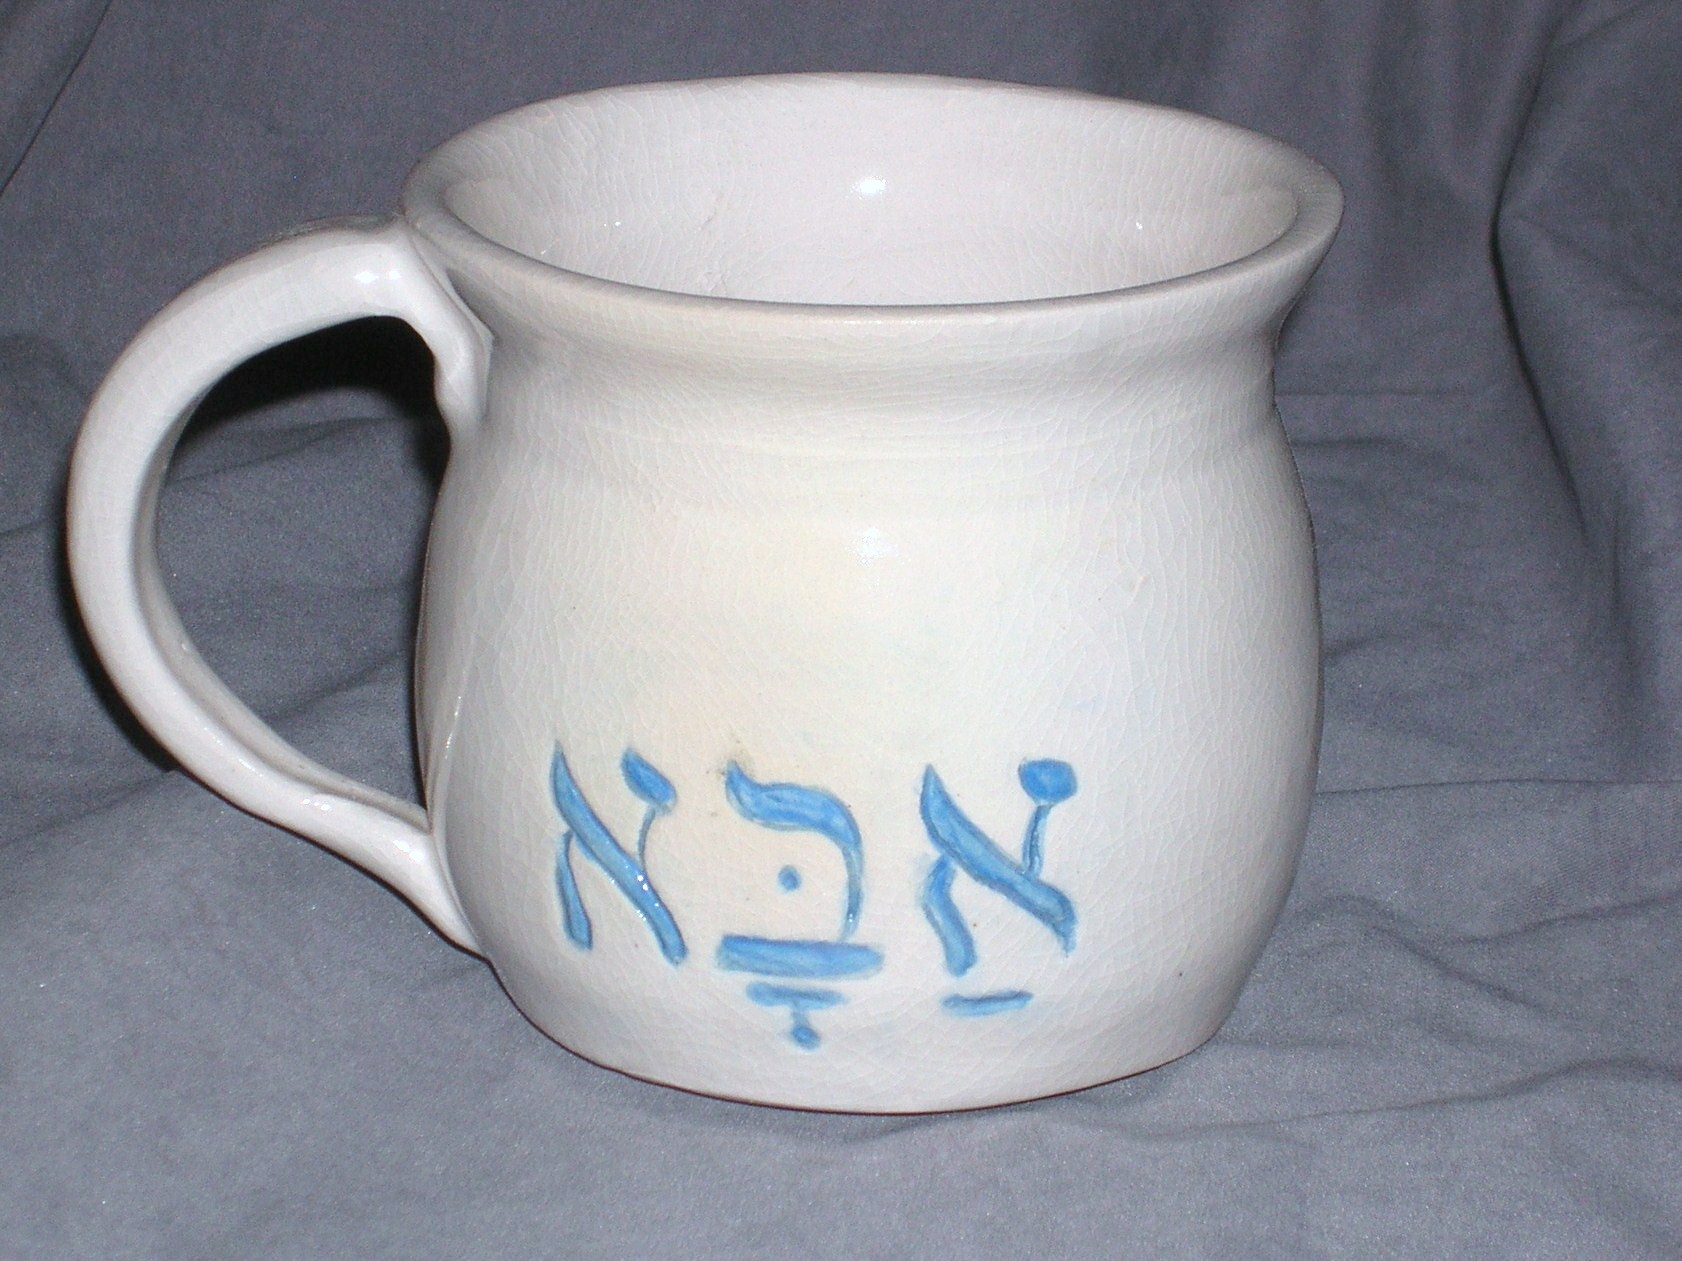 abba cup2